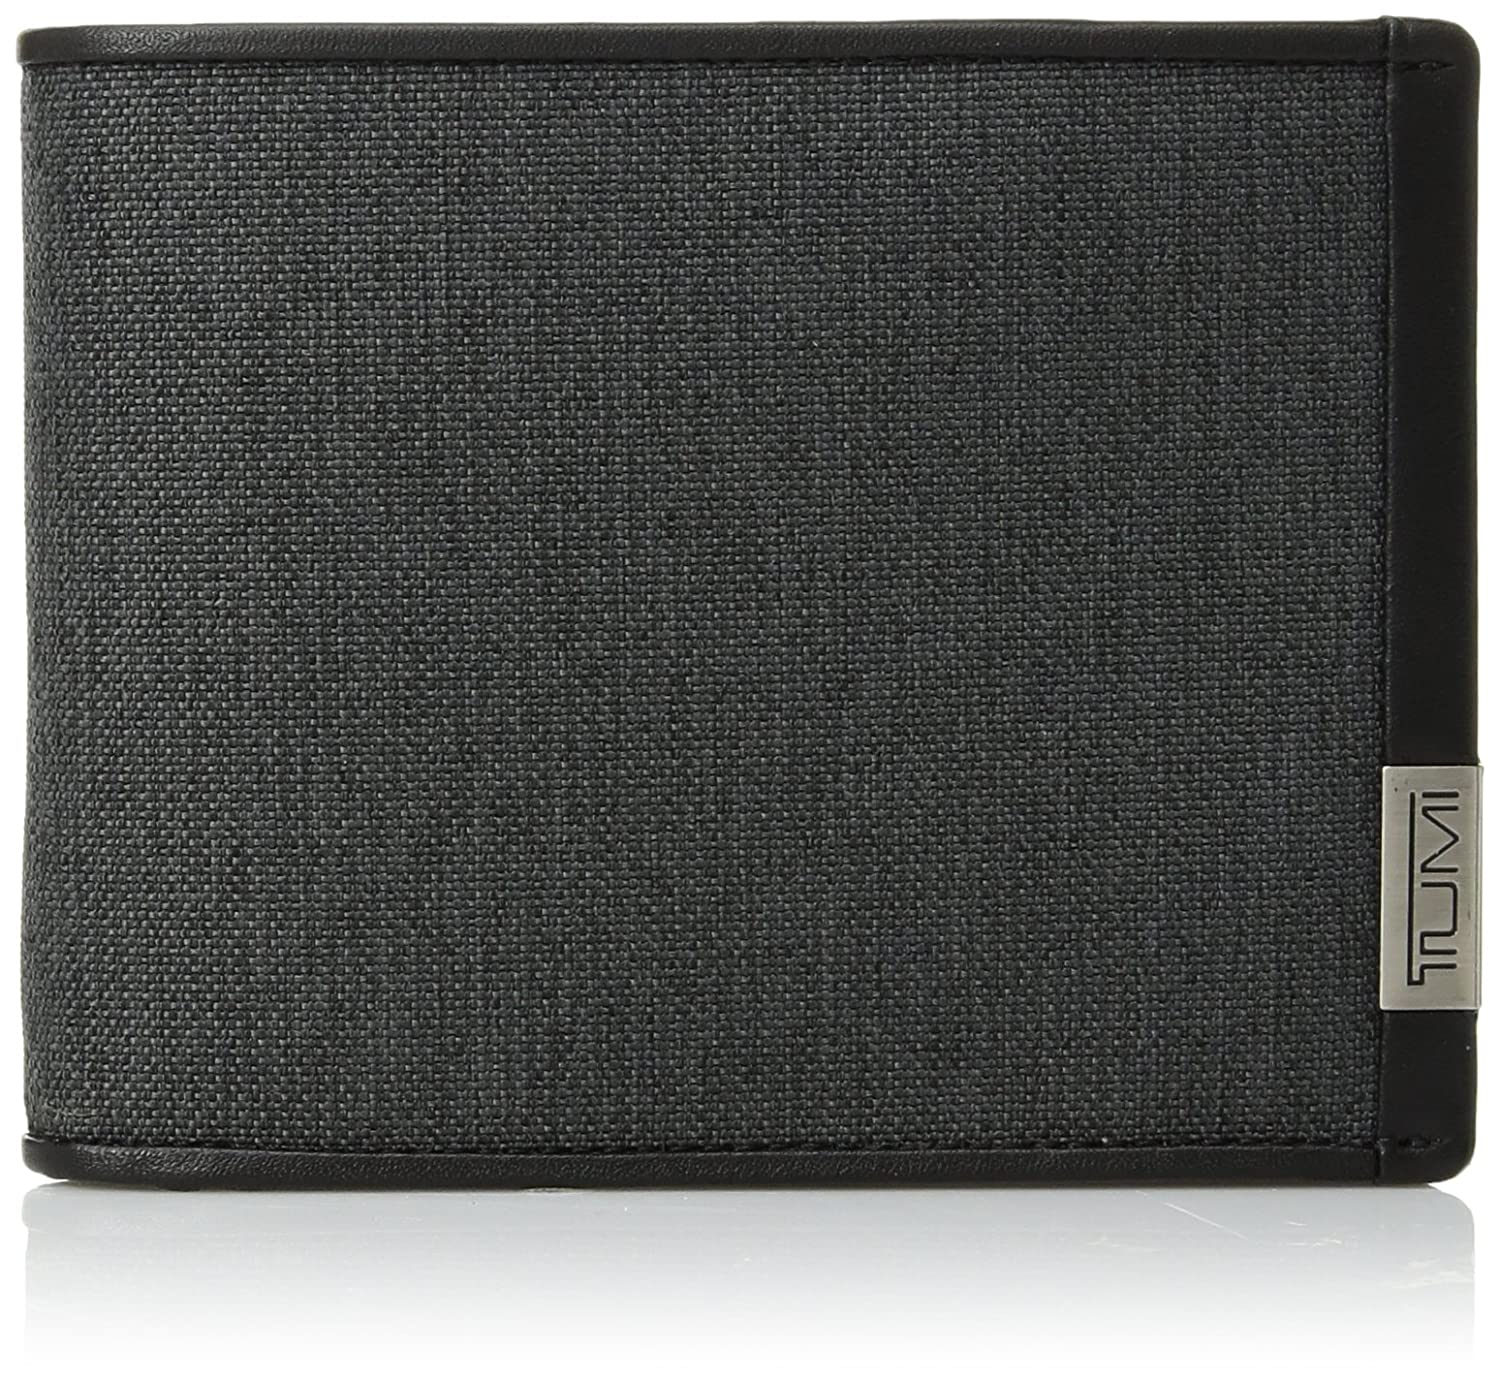 Tumi Men's Alpha Global Double Billfold Wallet with Rfid Blocking Tumi Men's Accessories 0119230DID